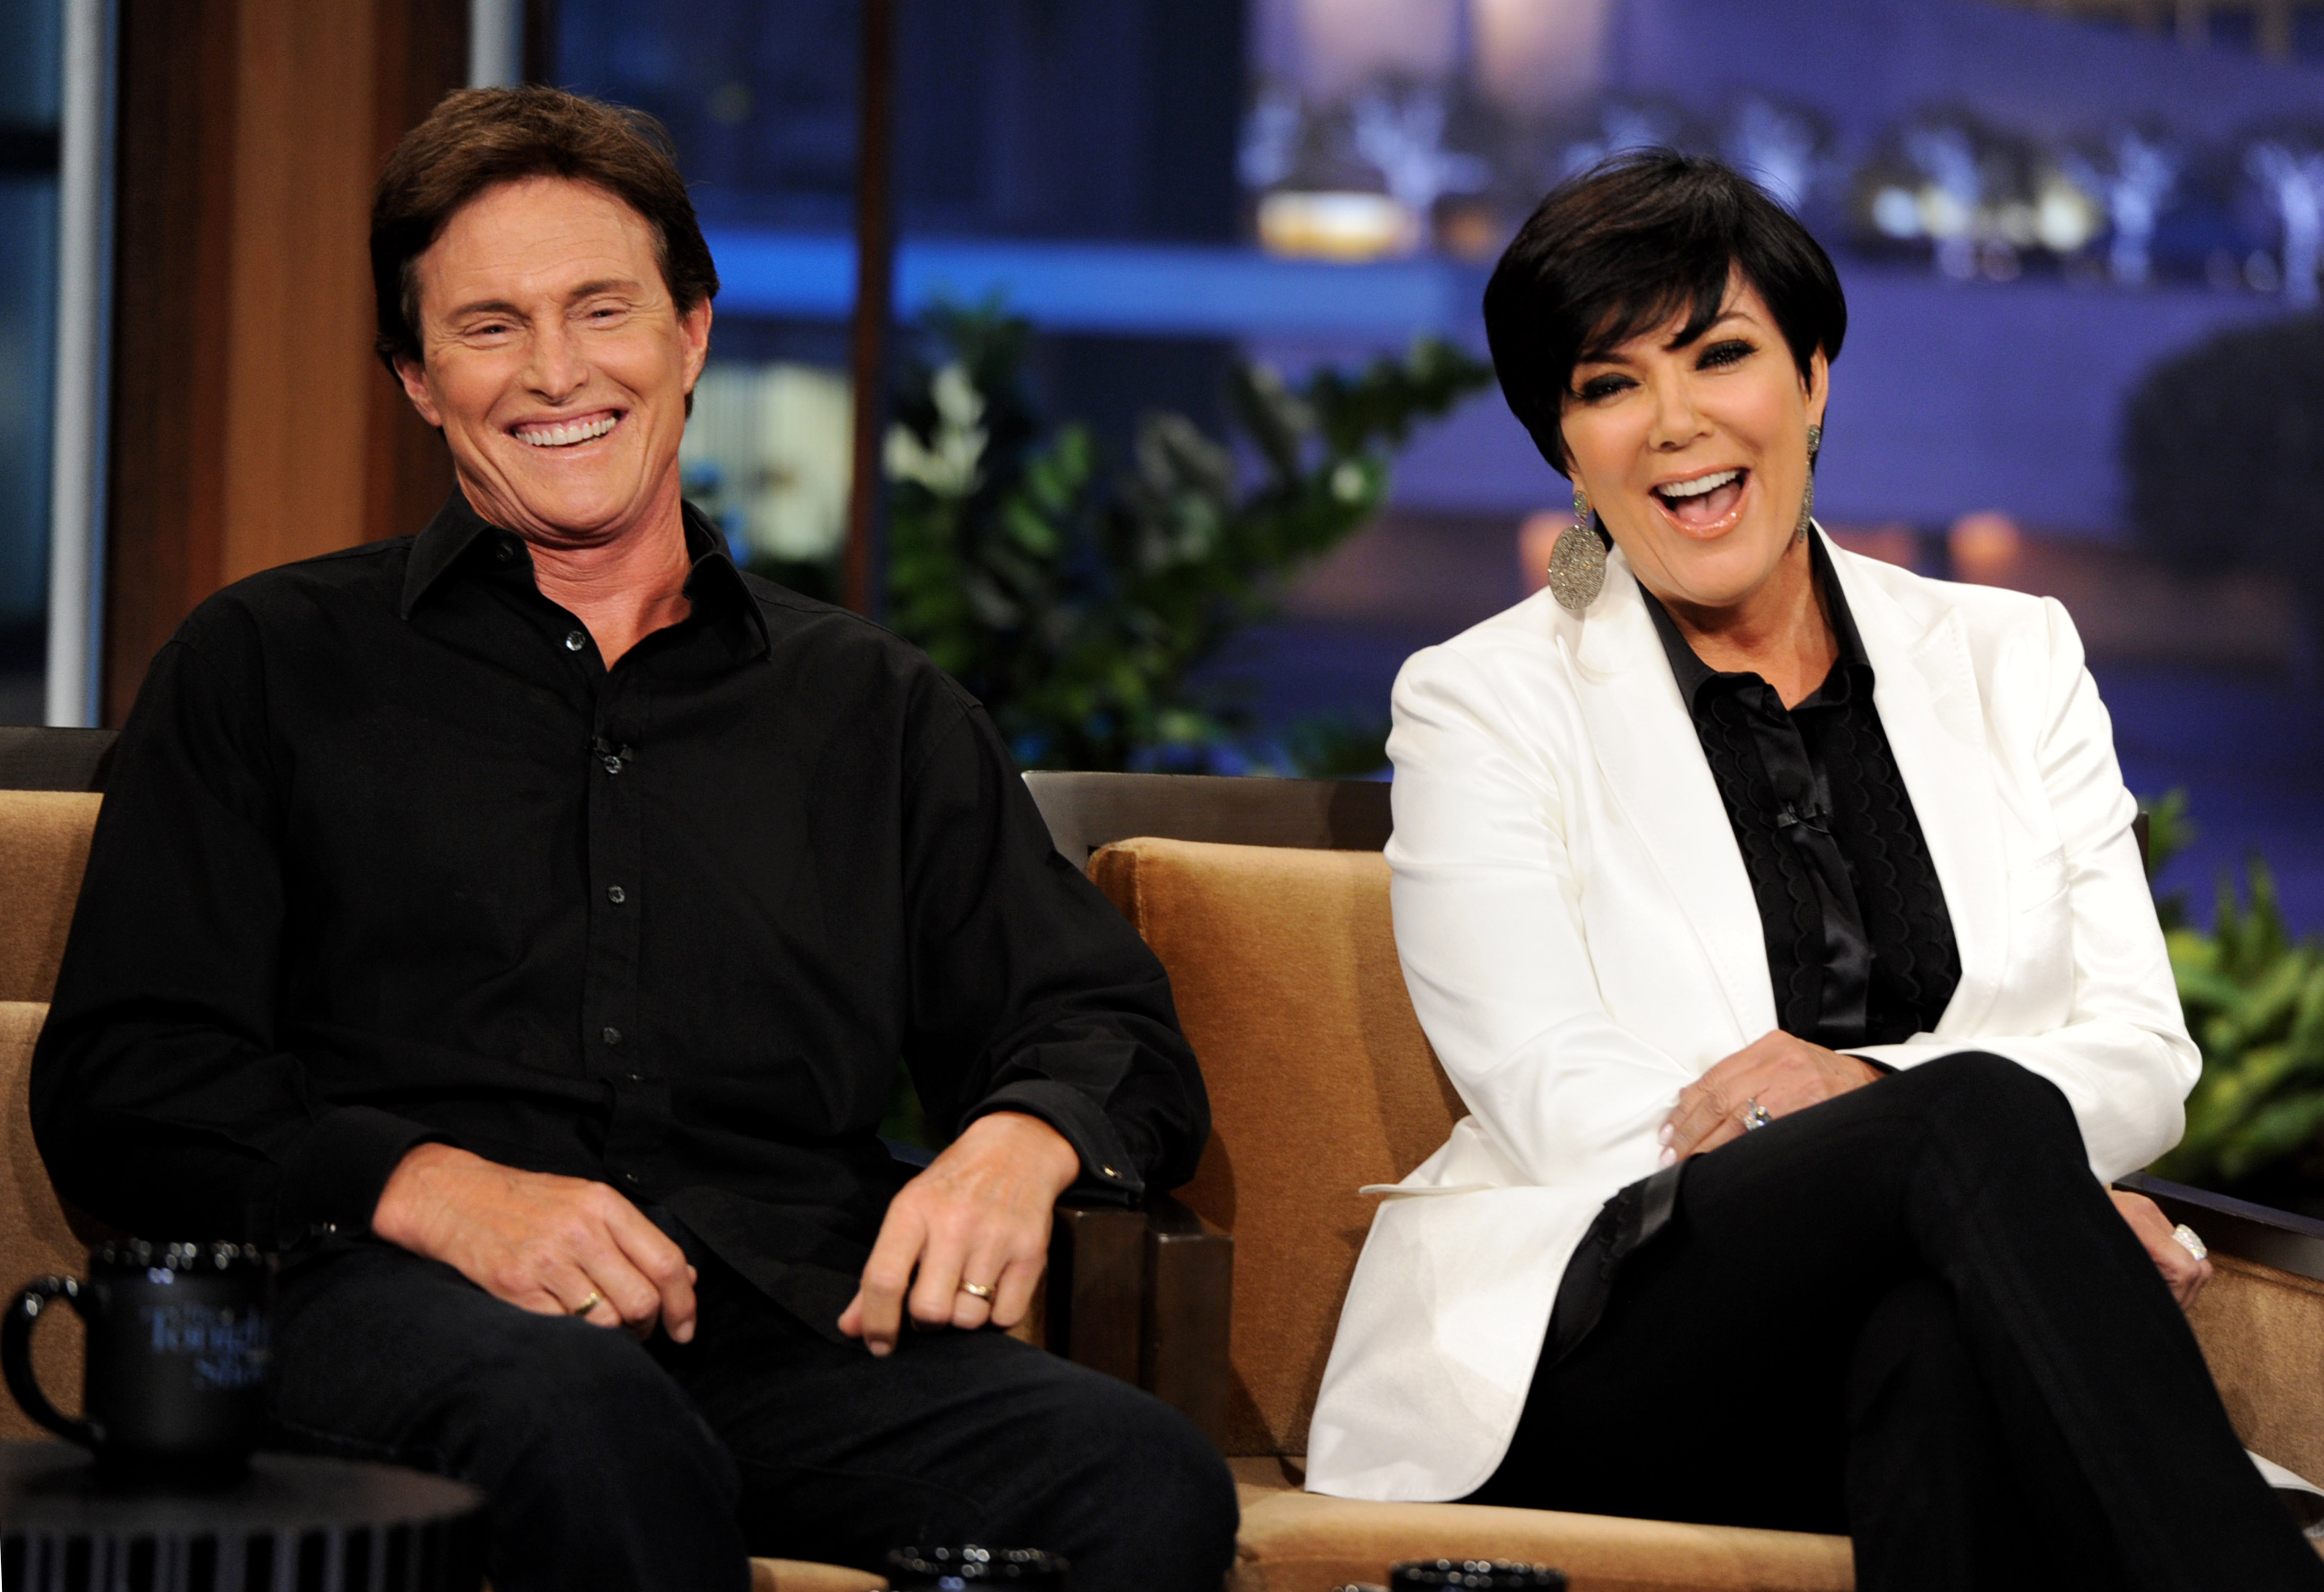 Television personalities Bruce Jenner (L) and his wife Kris Jenner appear on The Tonight Show with Jay Leno at the NBC Studios on June 10, 2011 in Burbank, Calif.